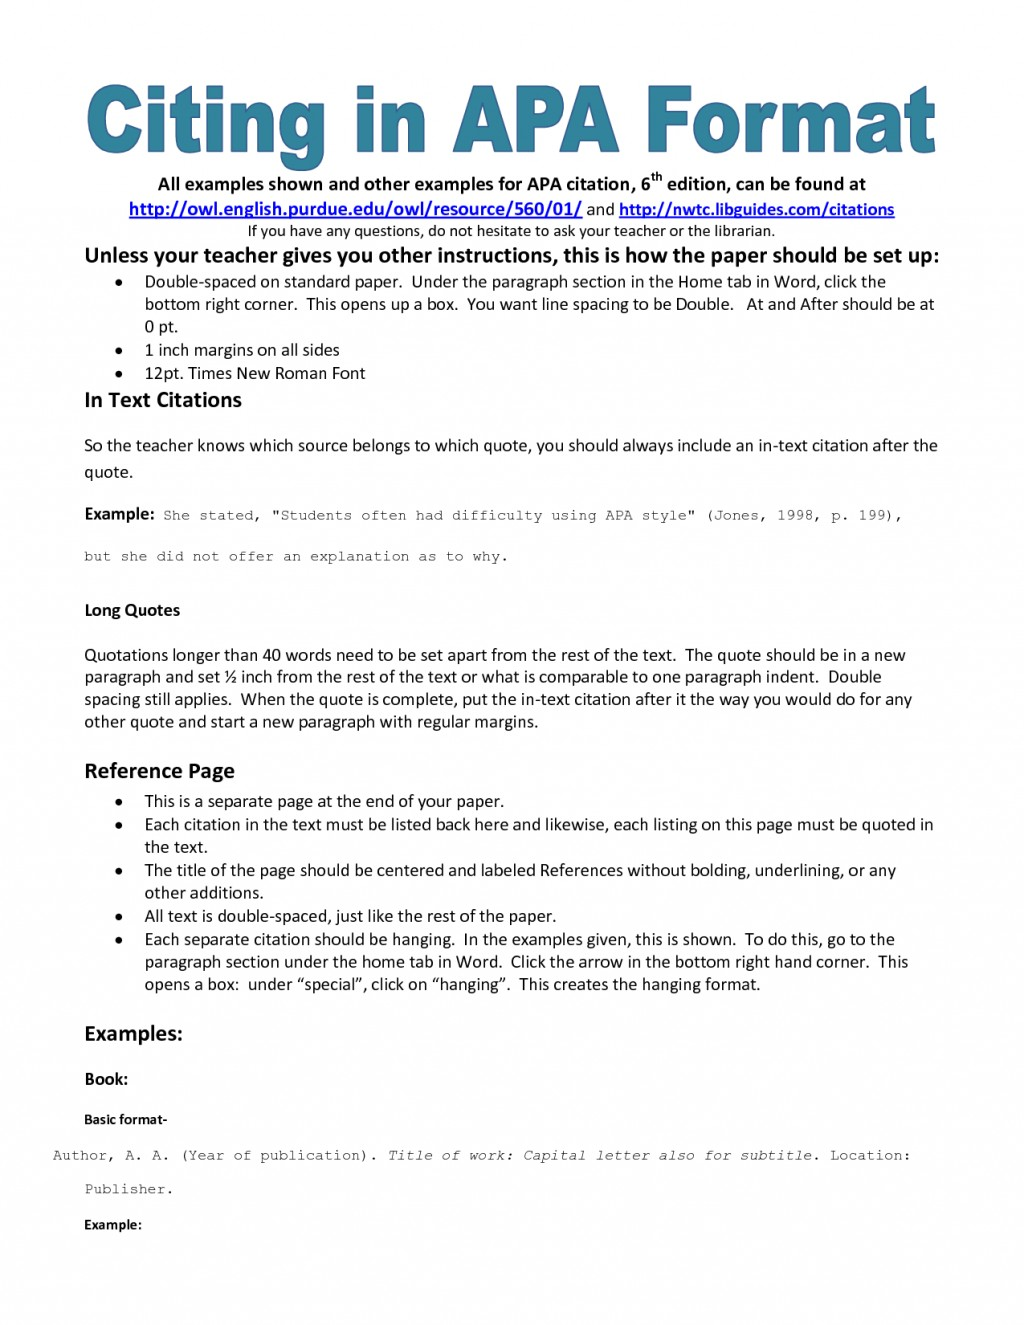 001 Research Paper Apa Format Frightening Citation In Text Citations Style Model Large